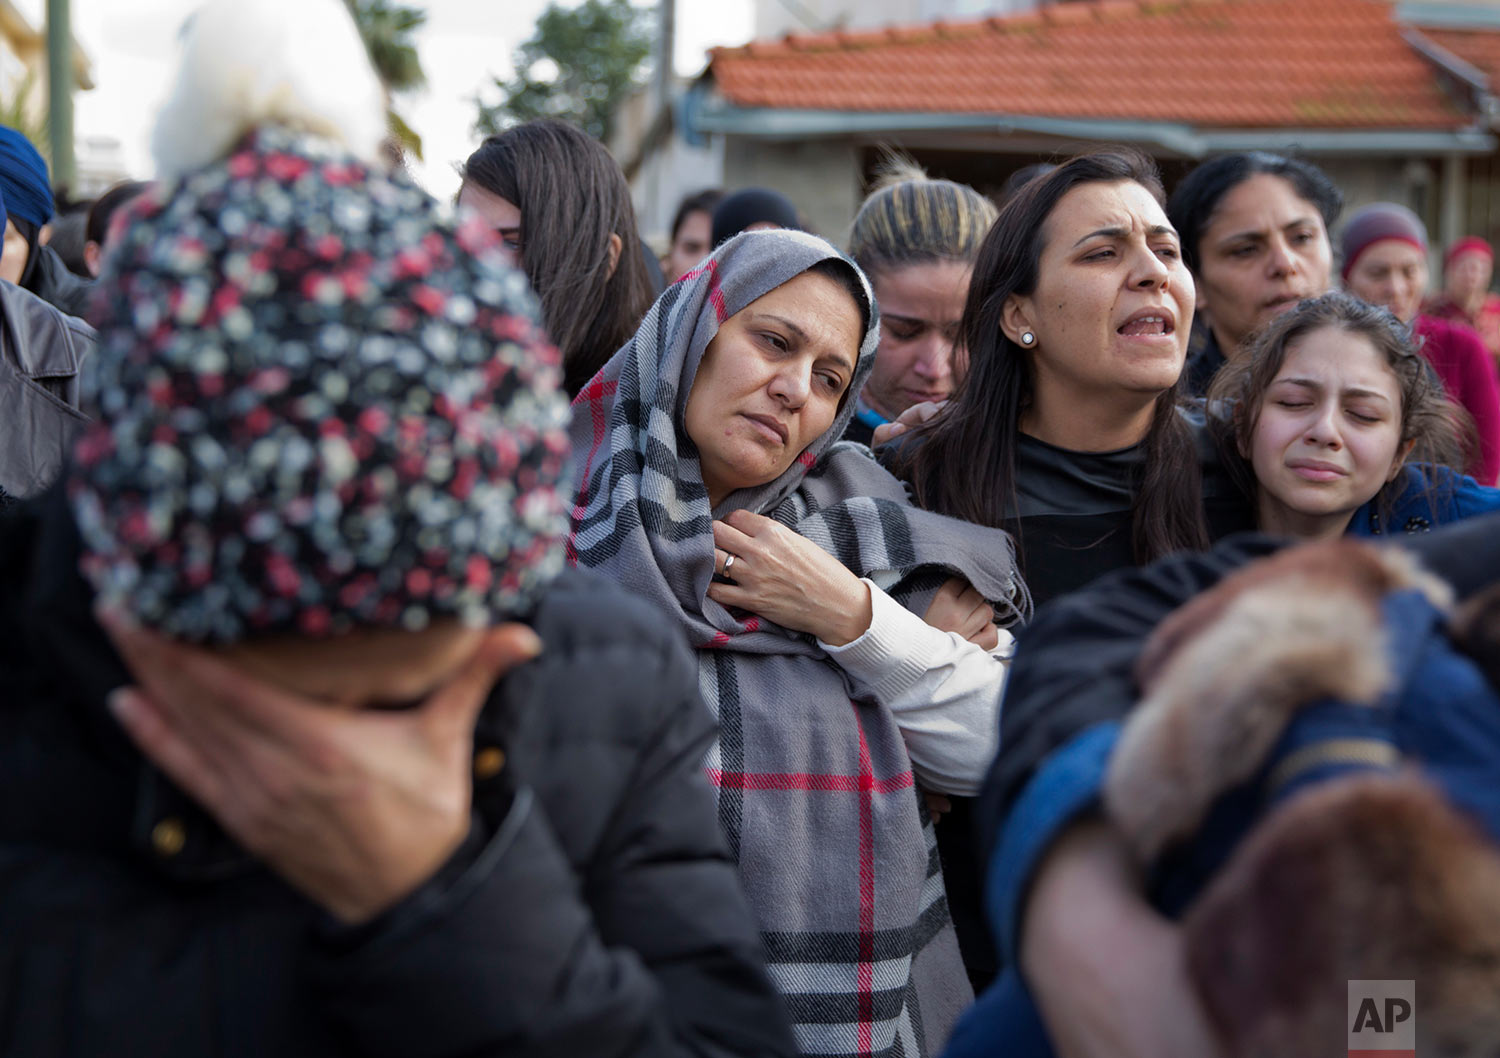 Lucy, mother of Leanne Nasser, center, mourns during the funeral of her daughter, who was killed in a New Year's Eve attack in Istanbul, in the town of Tira, Israel, Tuesday, Jan. 3, 2017. (AP Photo/Ariel Schalit)